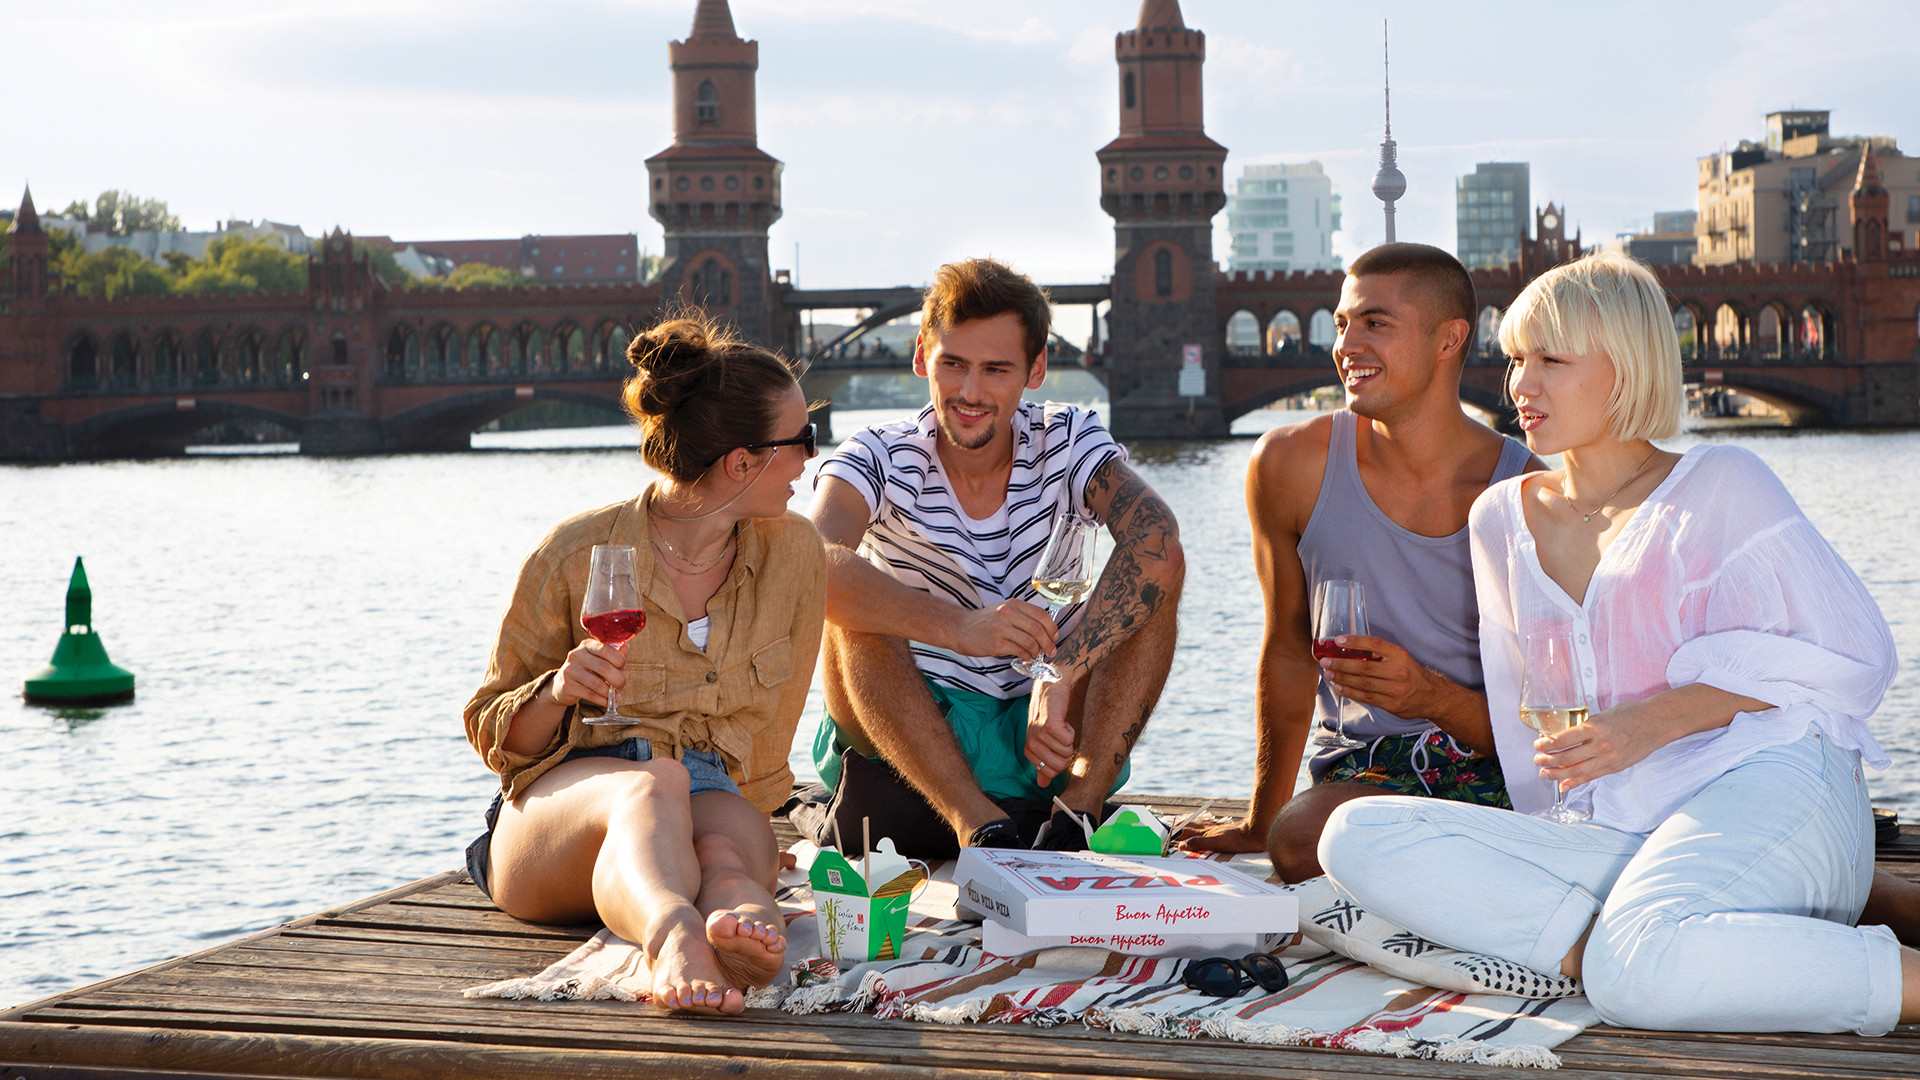 Wines of Germany | Summer wine drinking in Germany